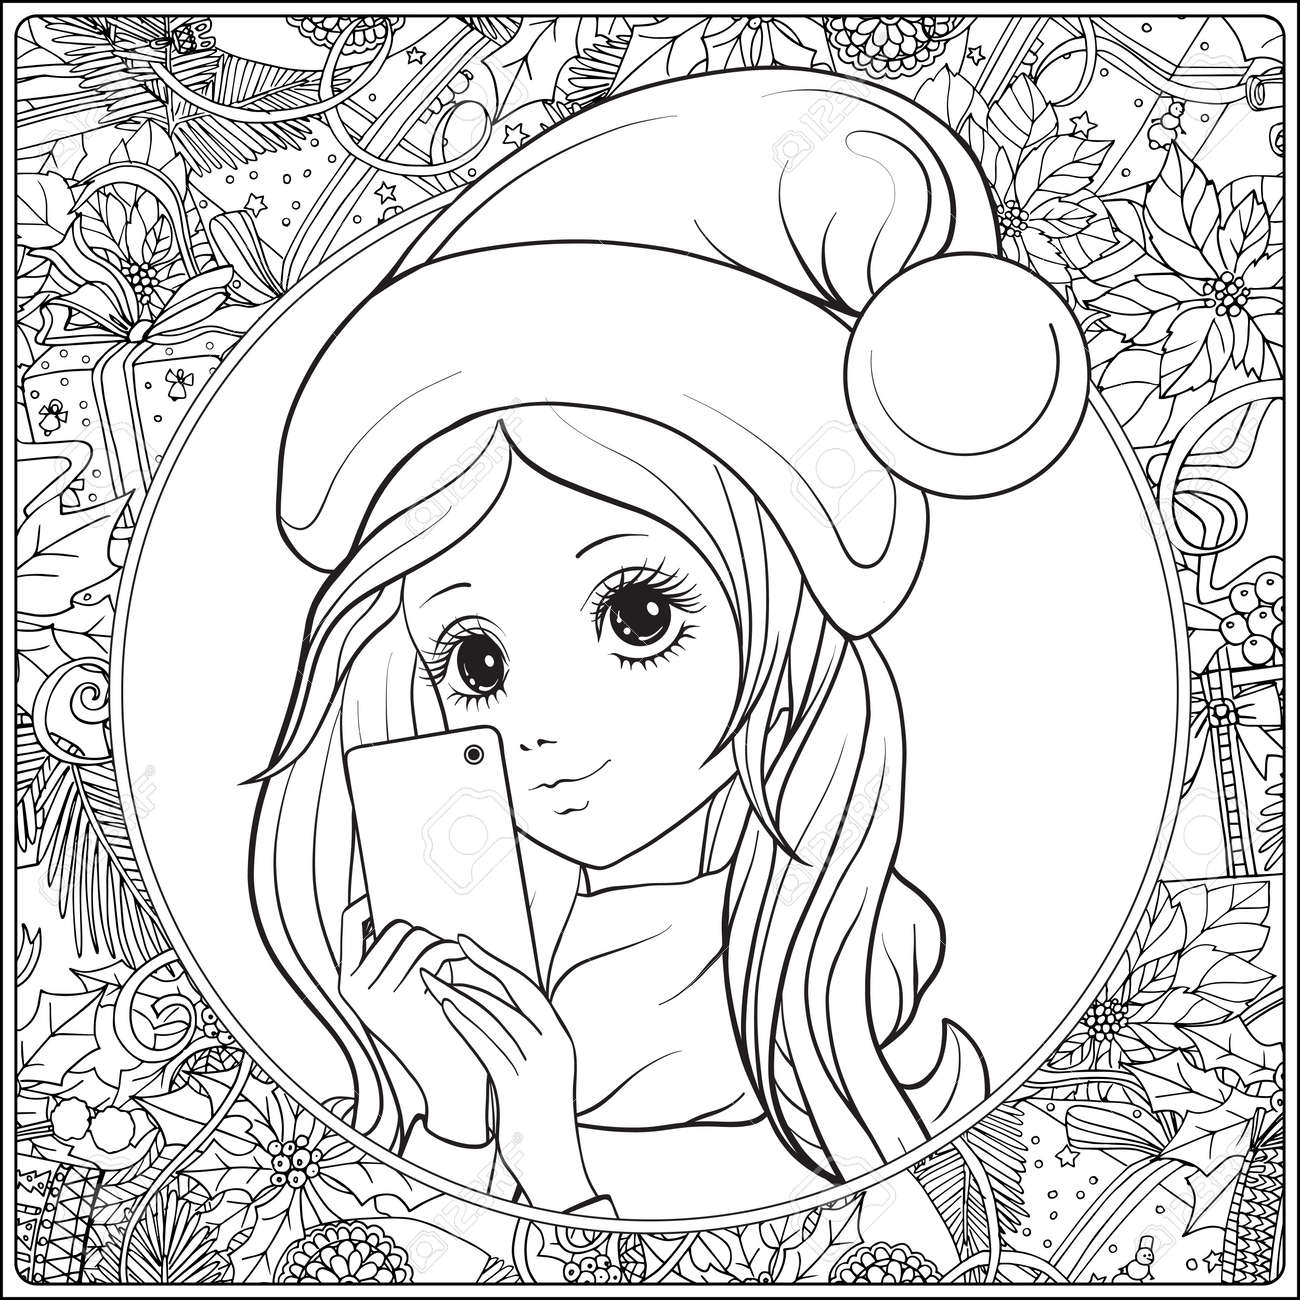 vector young nice girl with long hear and santa claus hat on her head make selfie or photograph on a mobile phone outline drawing coloring page